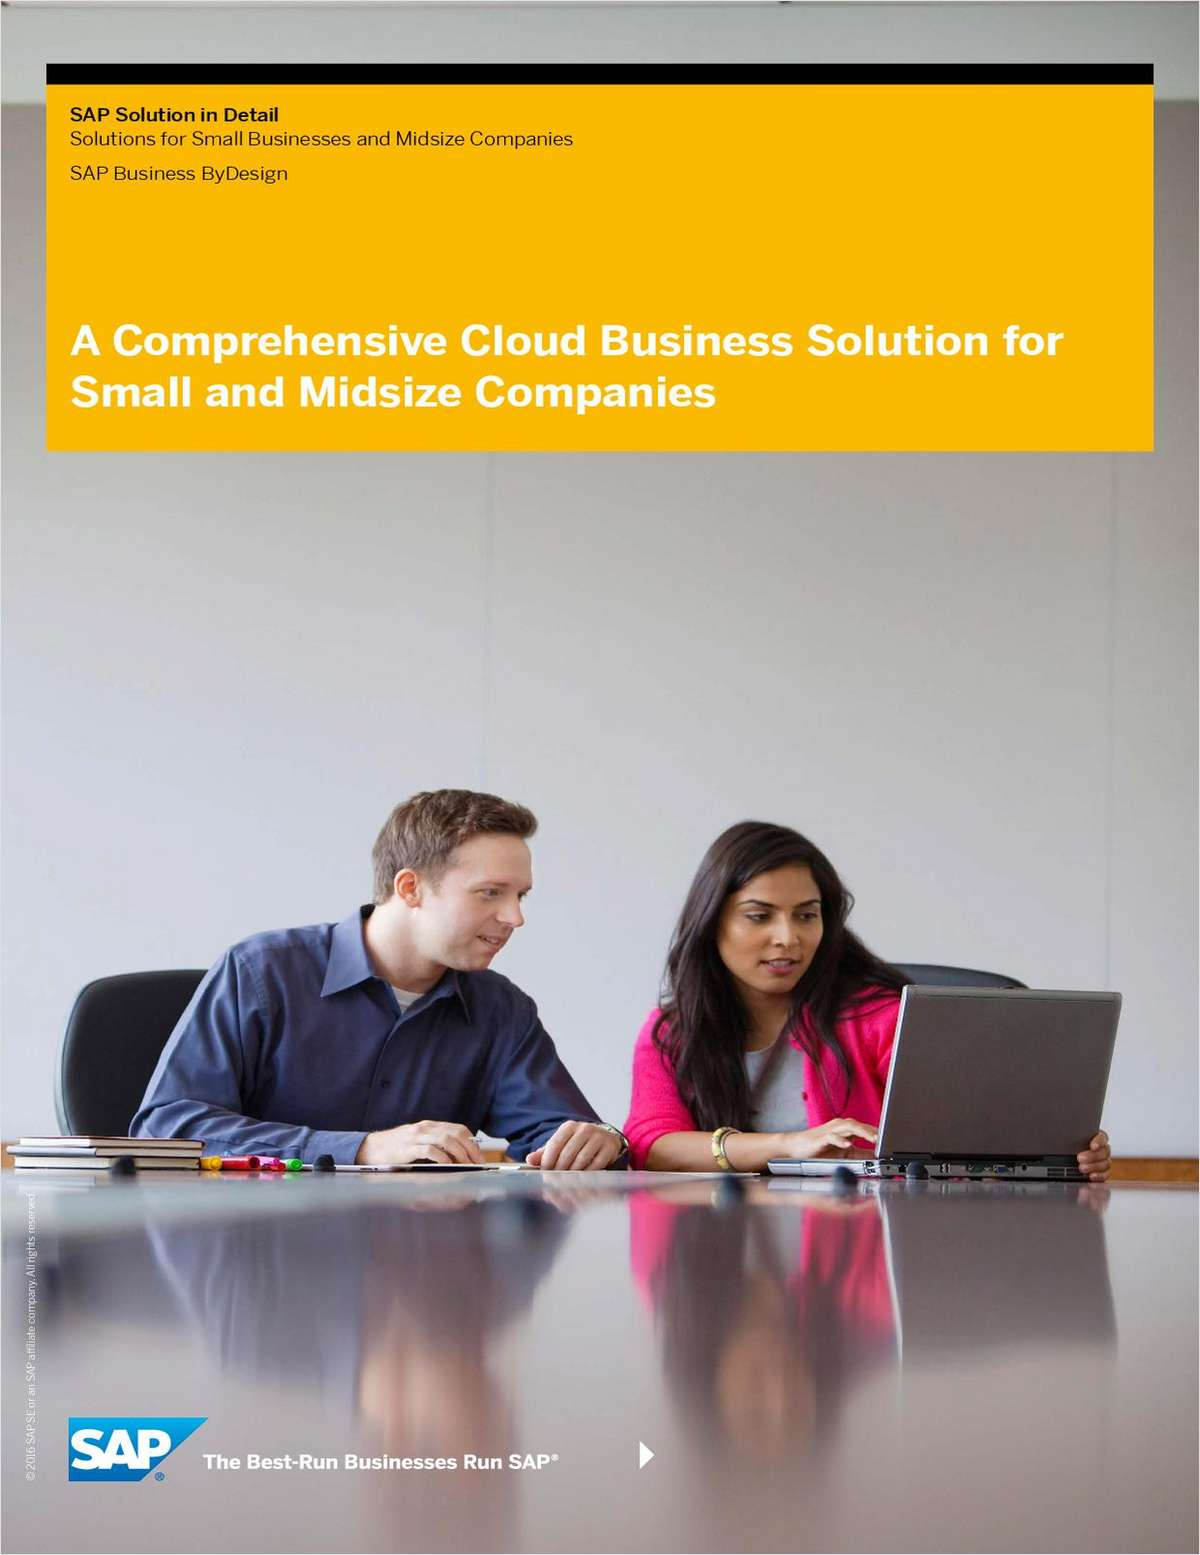 SAP Solution in Detail: A Comprehensive Cloud Business Solution for Small and Midsize Companies